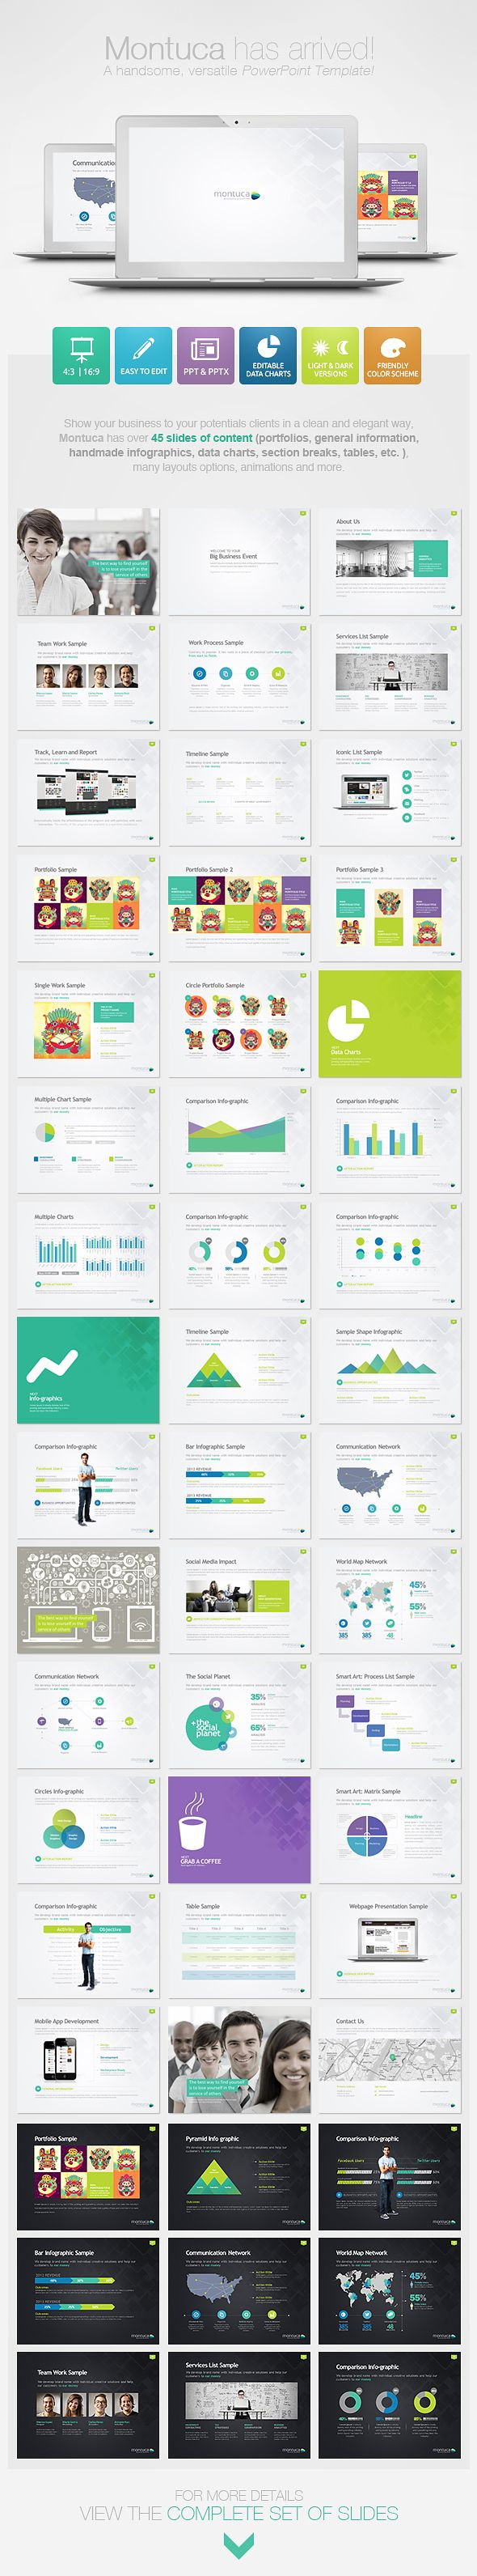 Montuca Powerpoint Presentation Template by EAMejia on deviantART